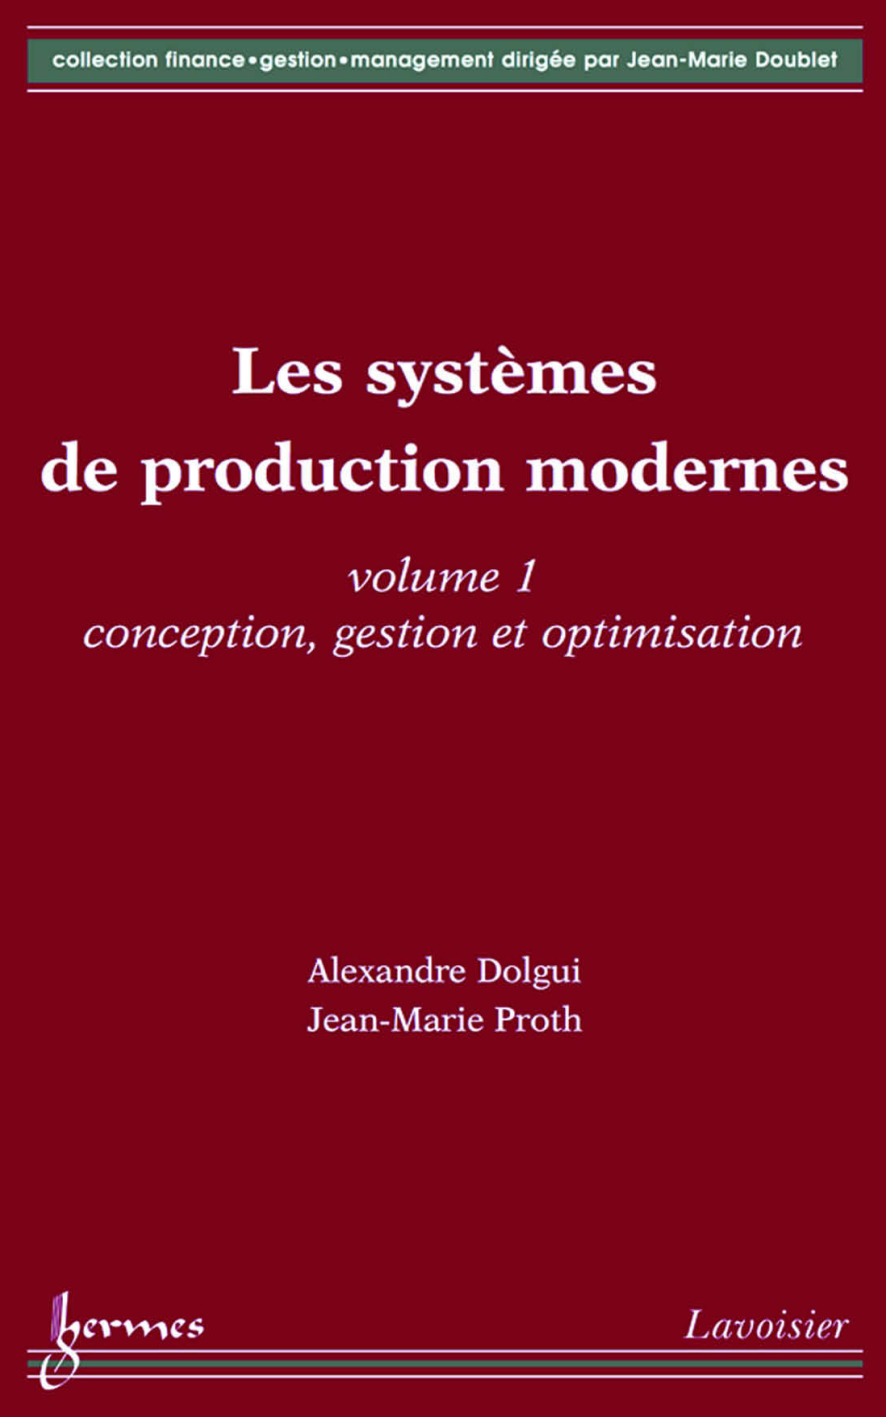 Les systèmes de production modernes Volume 1: Conception, gestion et optimisation (Coll. Finance, gestion, management)